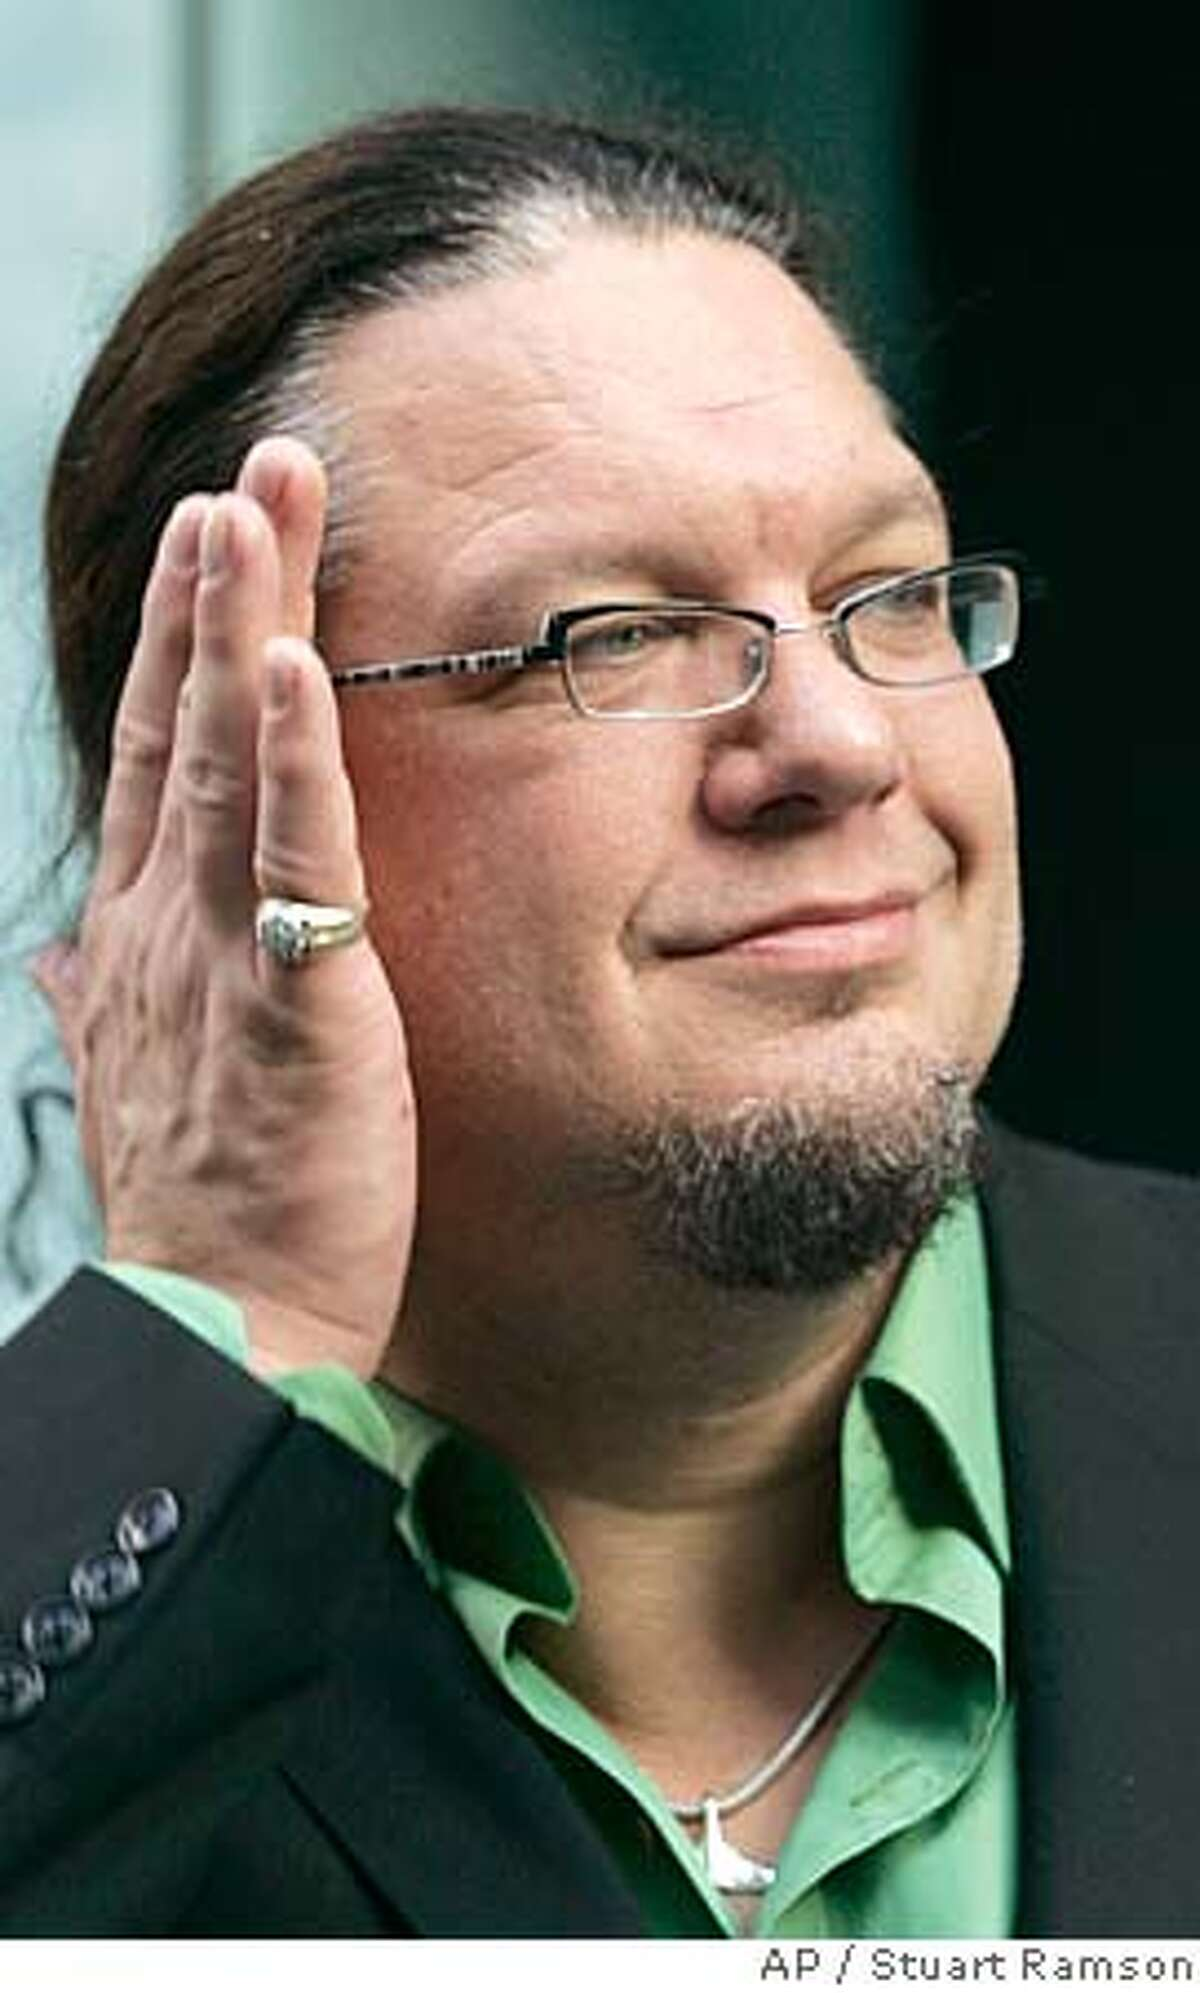 """Co-creator Penn Jillette arrives at the premiere of the film """"The Aristocrats"""", Tuesday, July 26, 2005, in New York. The film is a documentary about an abominably foul-mouthed joke comedians have been sharing for decades. (AP Photo/Stuart Ramson)"""